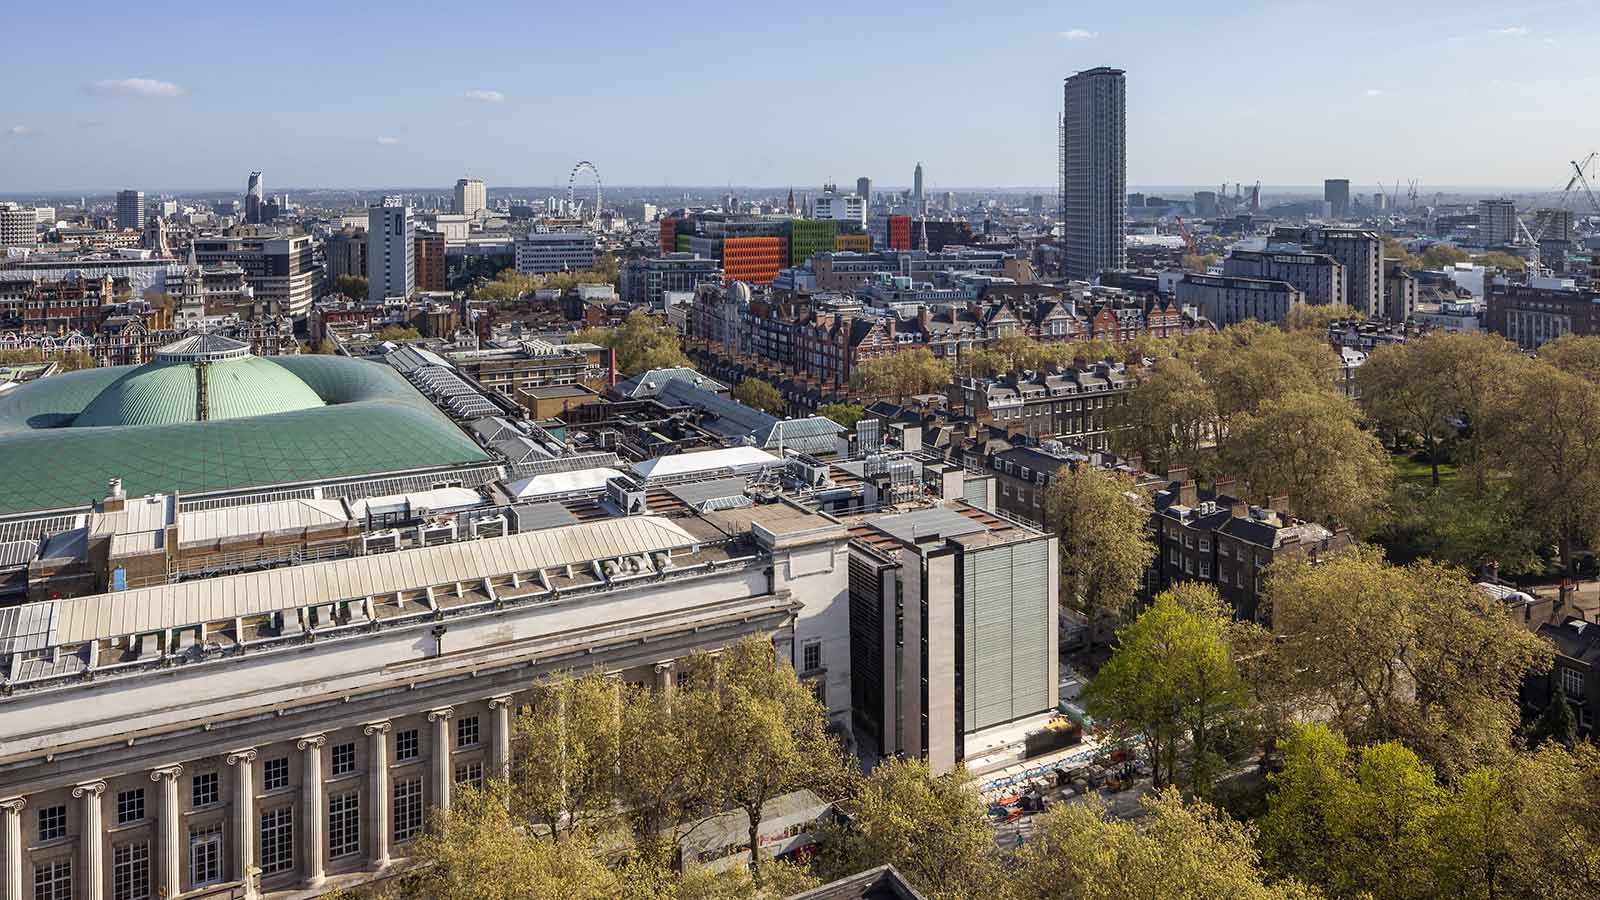 British Museum Building Exterior Aerial Day View - Mace Group